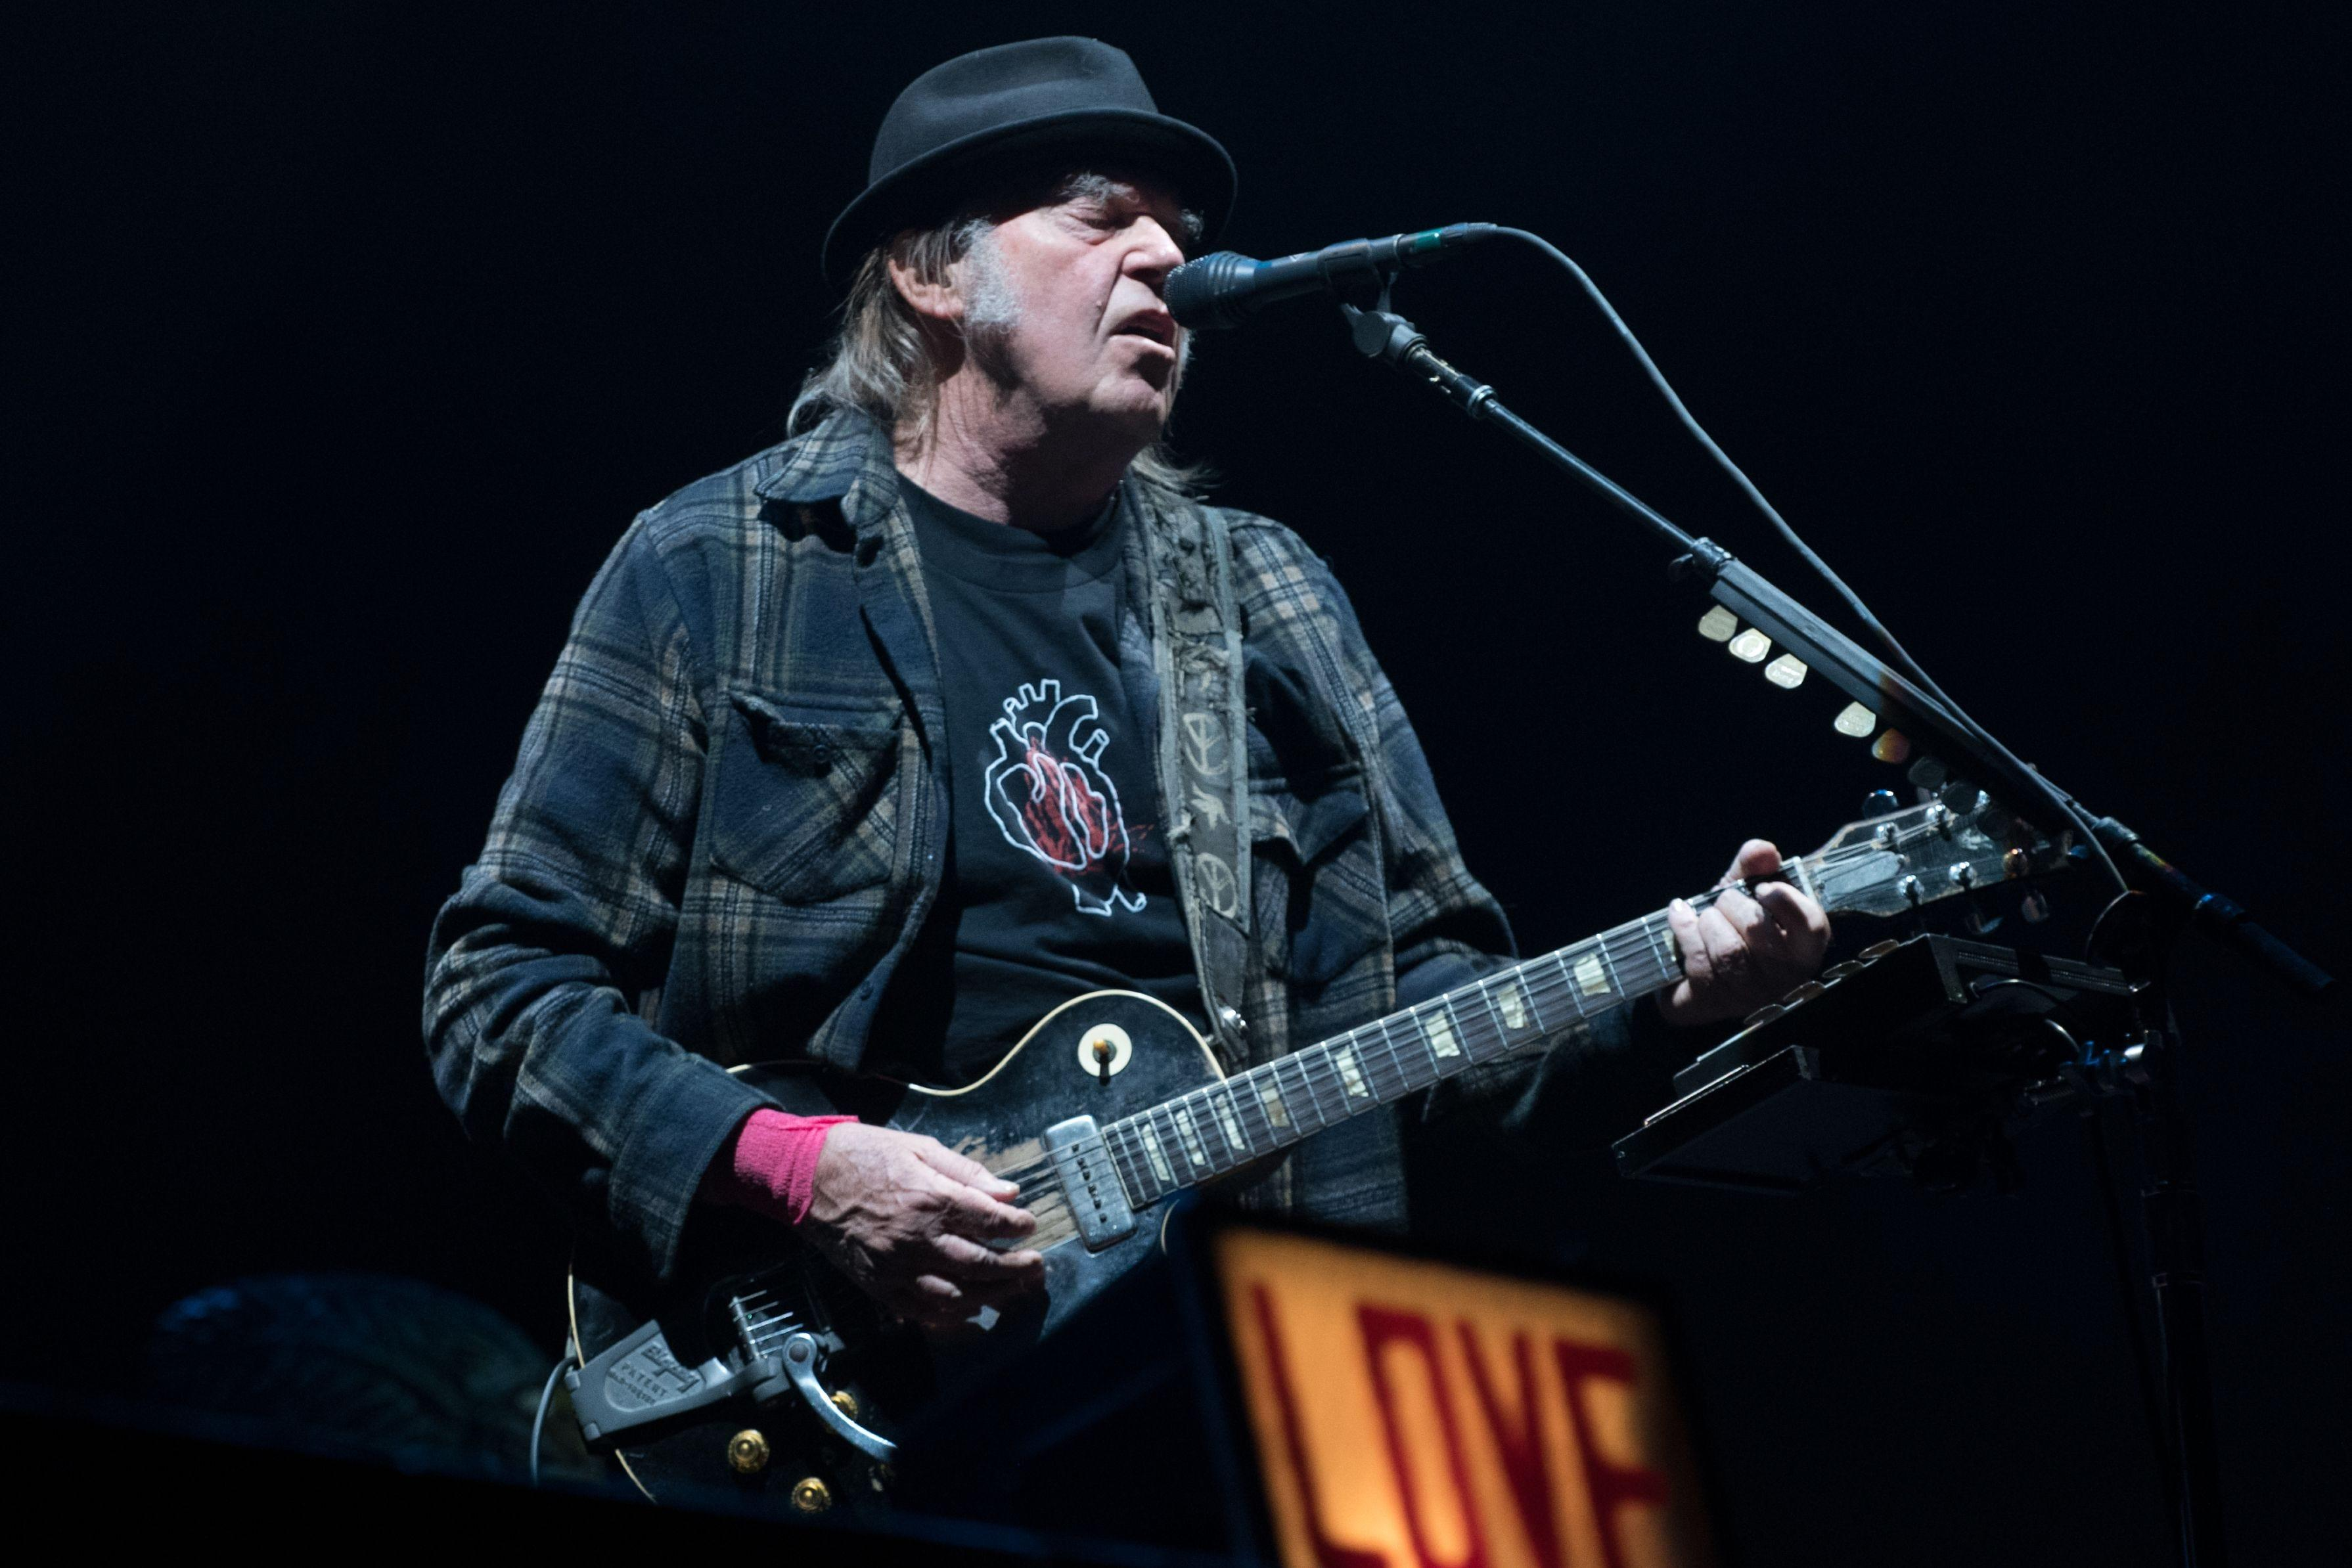 Neil Young posts lawsuit against Trump campaign over song use at political events